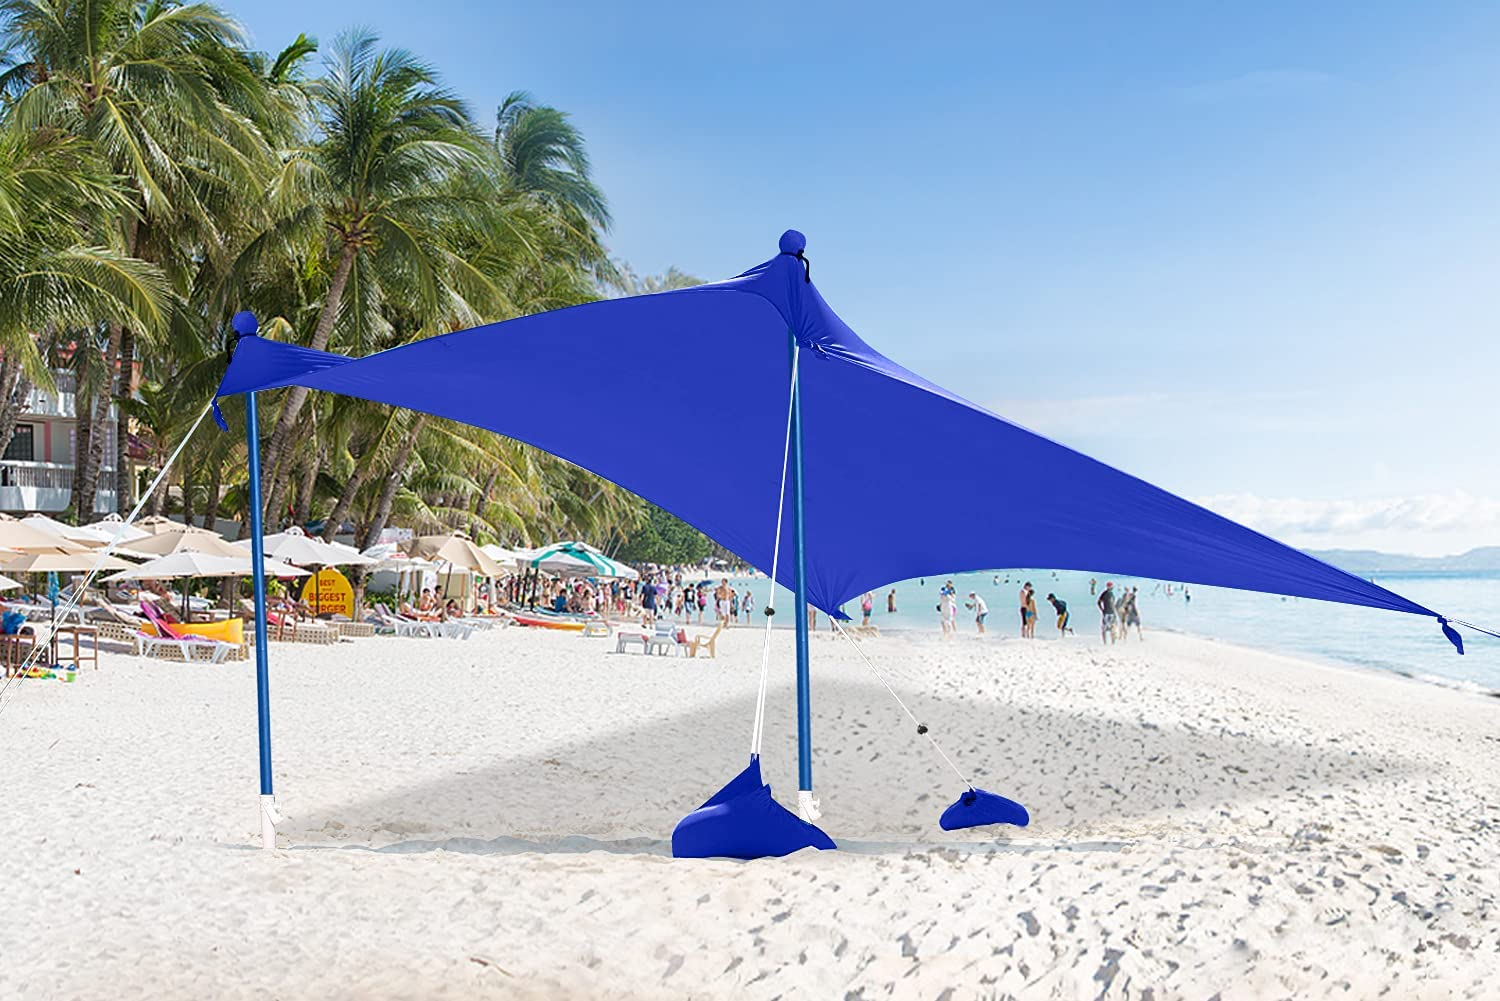 Max Limited Special Price 40% OFF ABCCANOPY Beach Sunshade Tent UPF50+ Shel Protection Portable UV